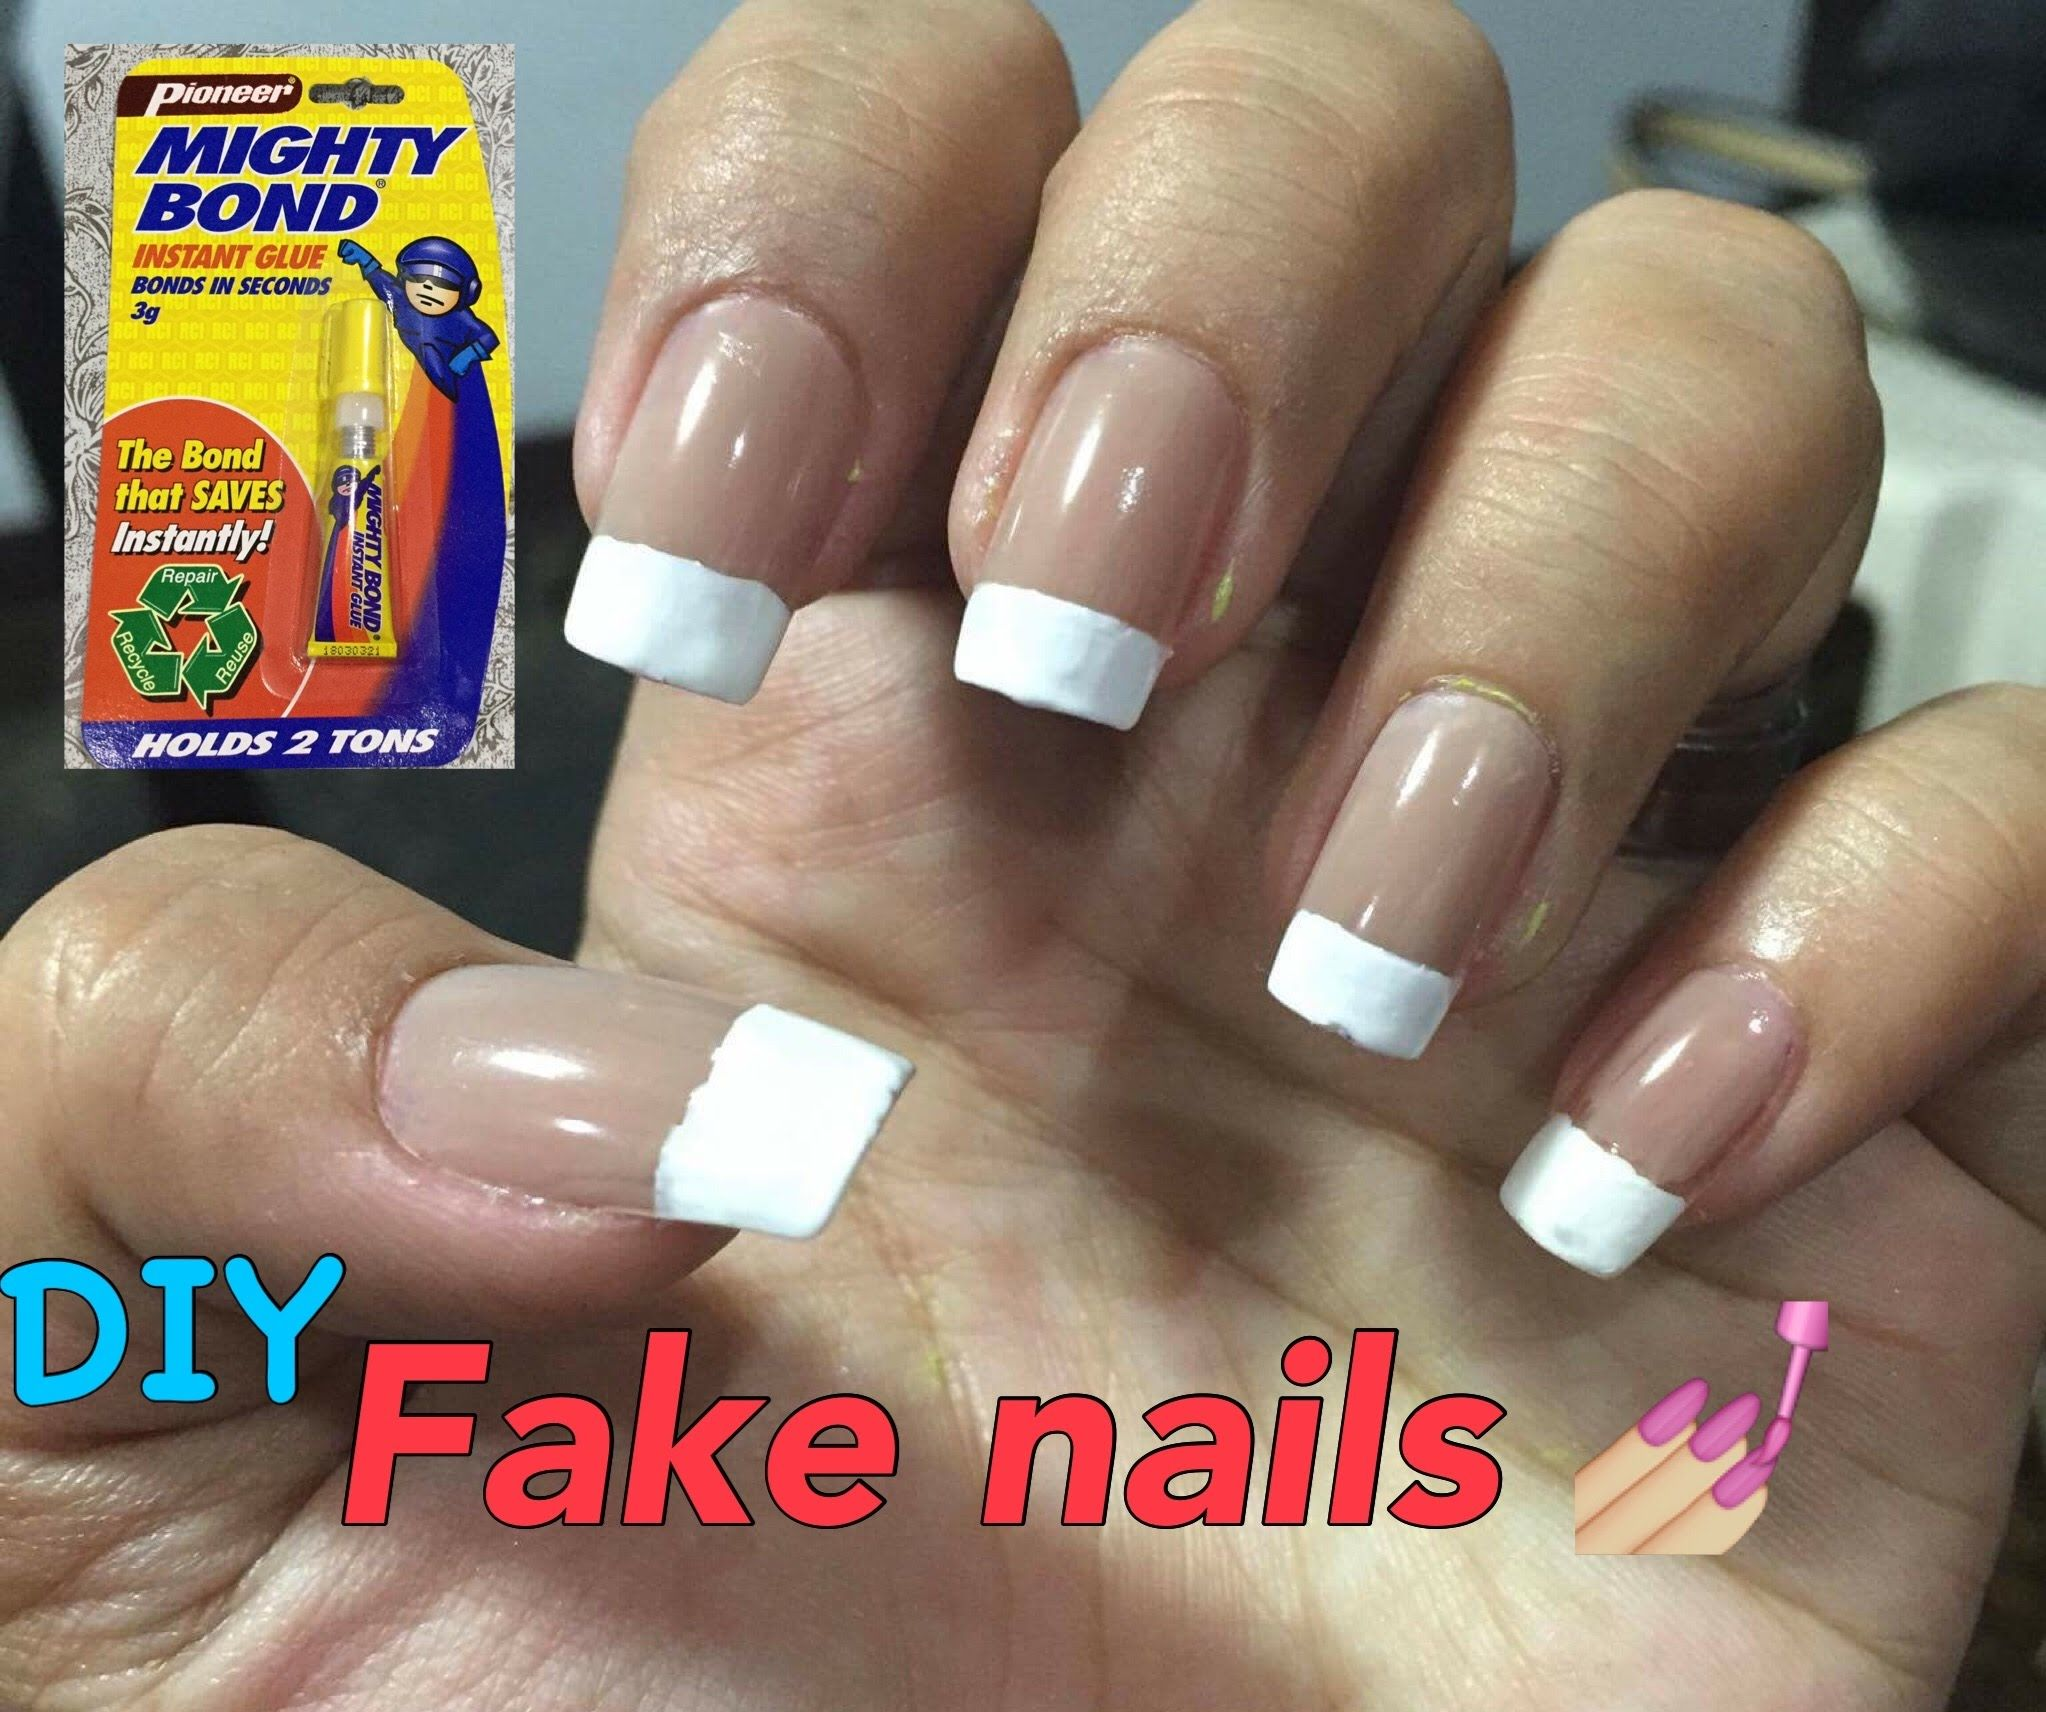 Diy Fake Nails How To Attach Remove No Nail Glue No Acrylic Kikay Glue On Nails Nails Fake Nails